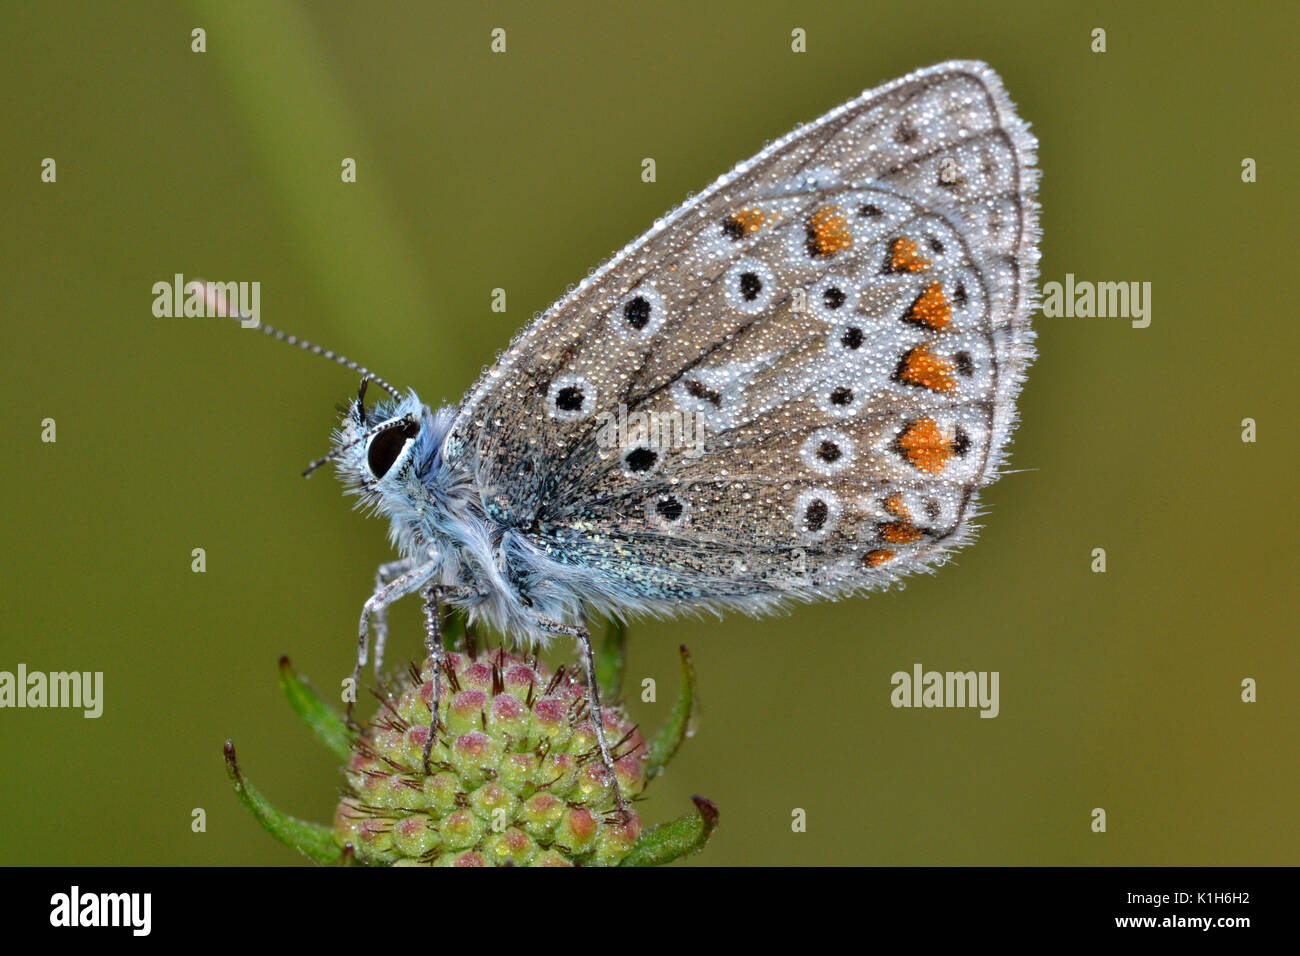 Common Blue butterfly, Chilterns, England, roosting and covered in morning dew. Polommatus icarus. - Stock Image